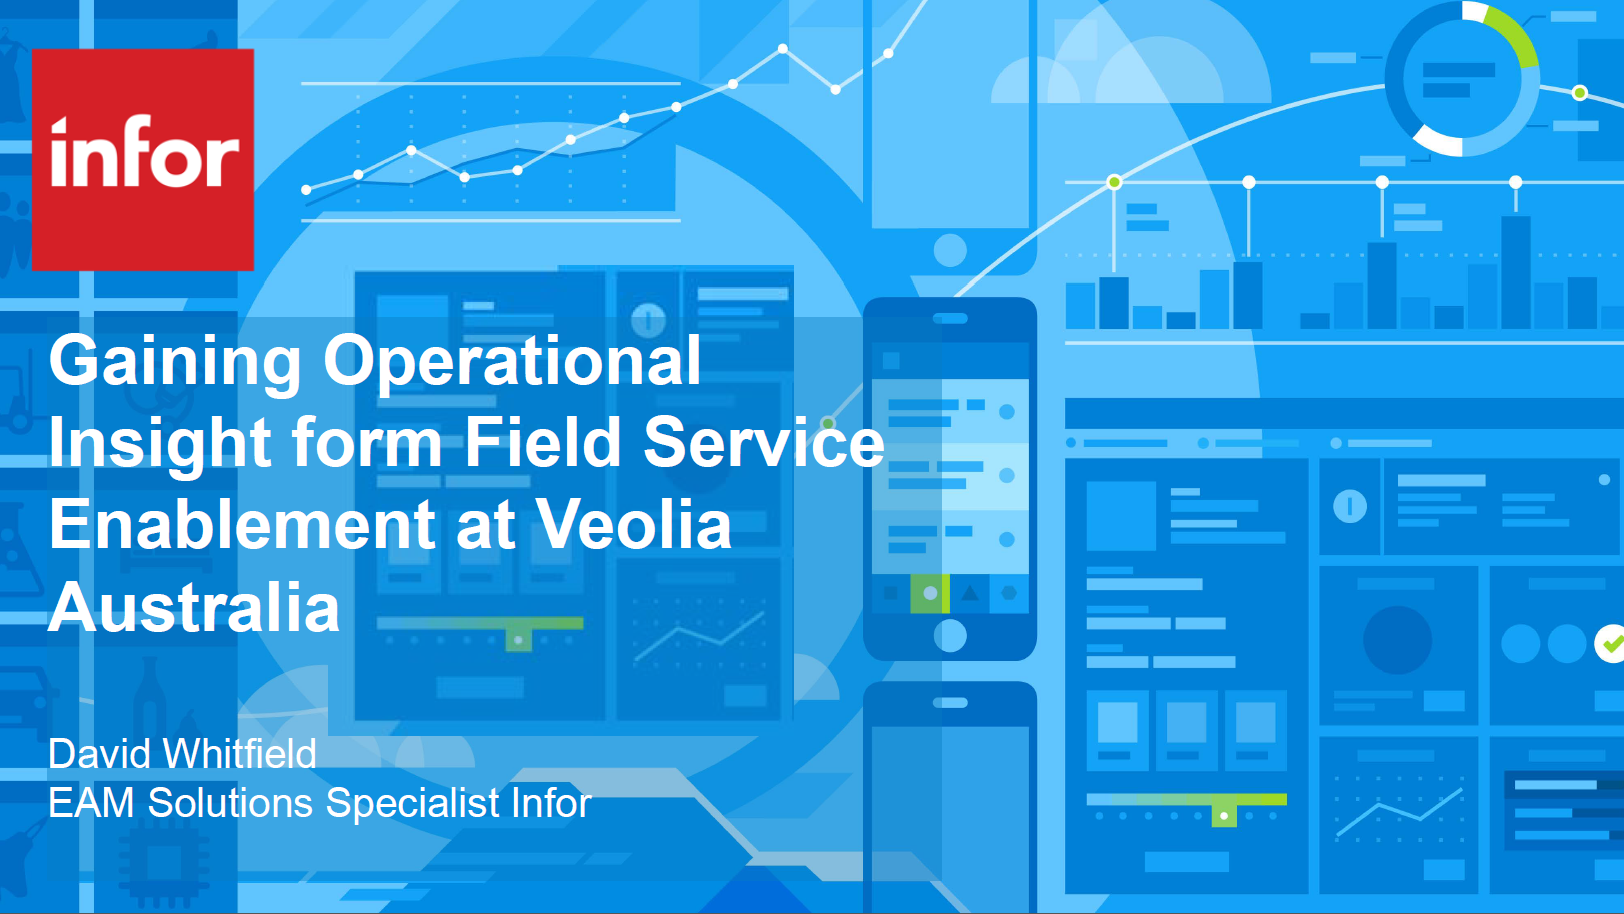 Gaining Operational Insight from Field Service Enablement at Veolia